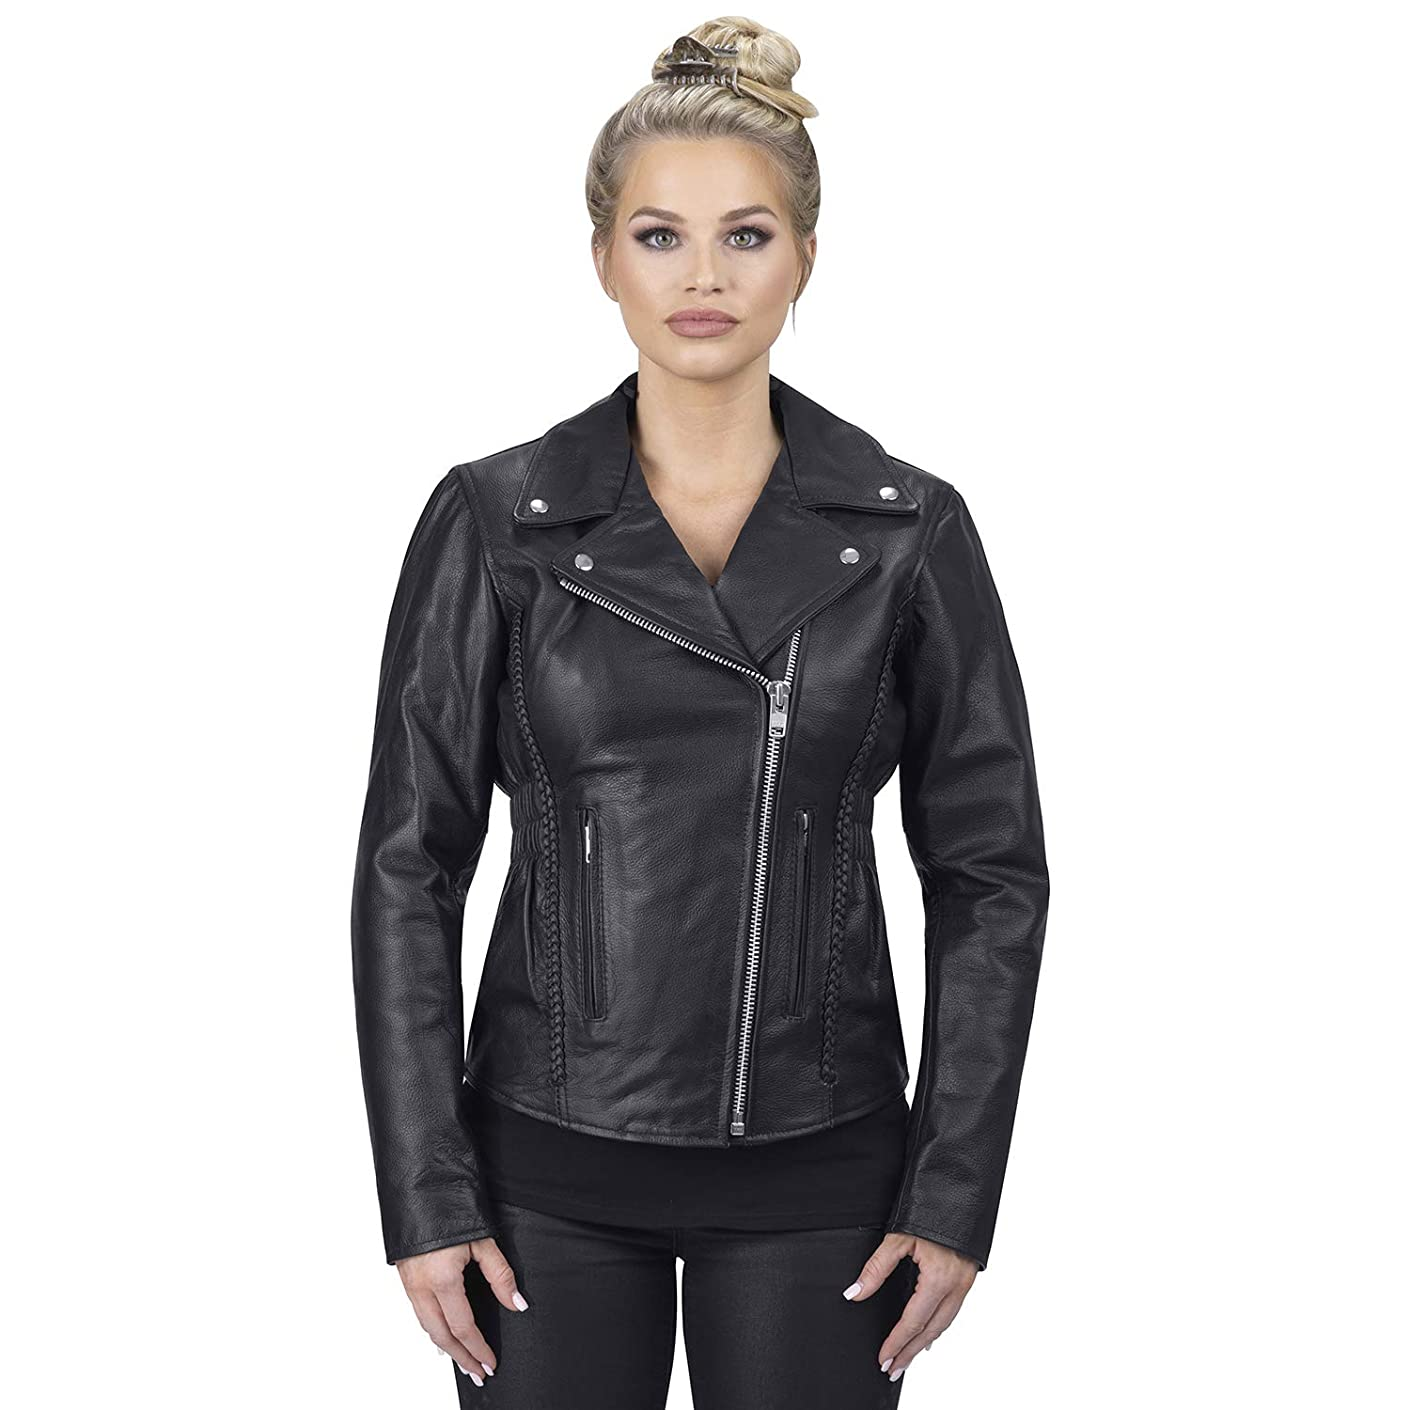 Viking Cycle Cruise Premium Grade Cowhide Leather Motorcycle Jacket for Women